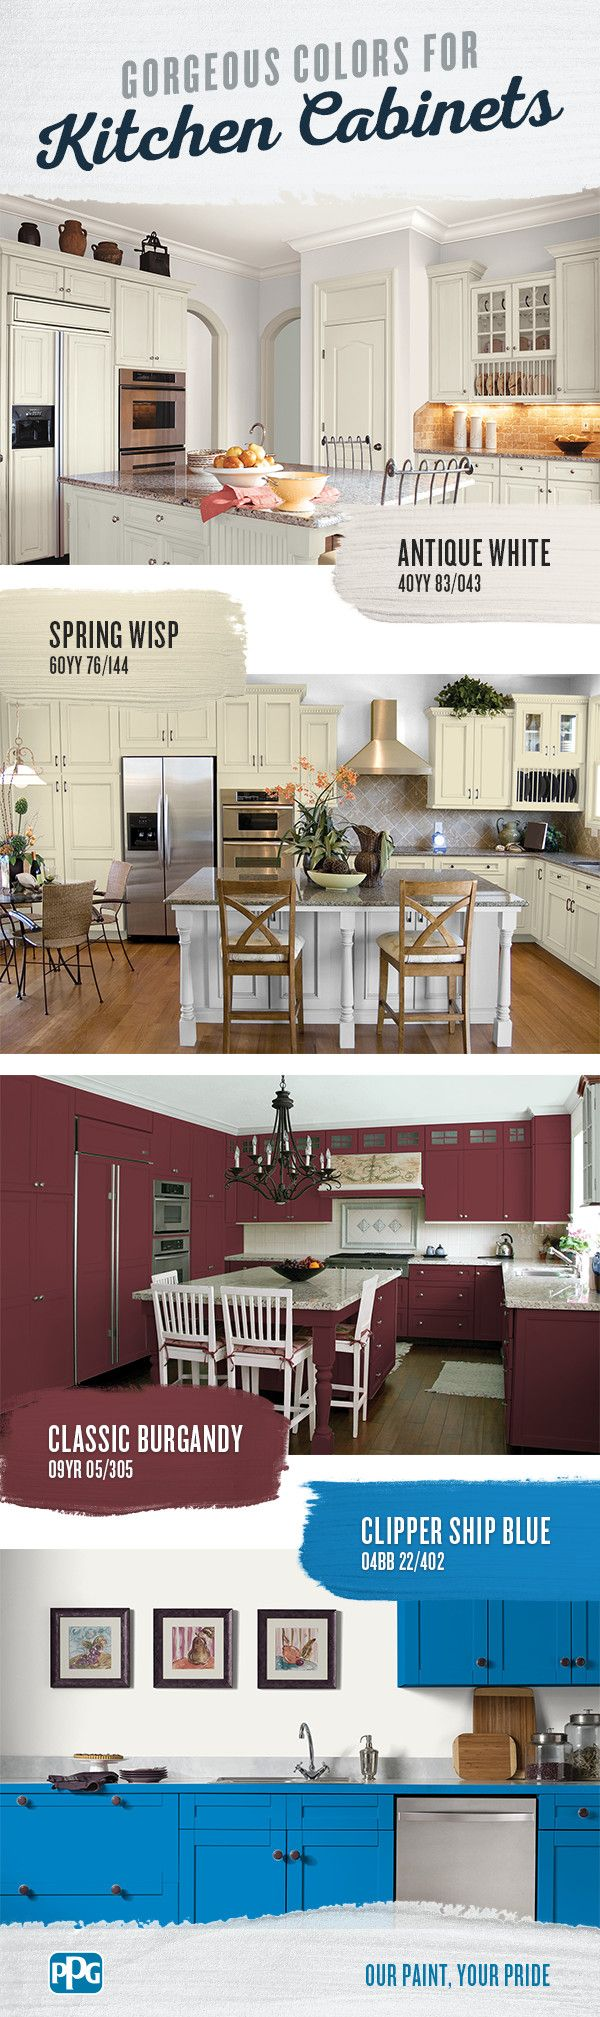 best ideas for michelles house images on pinterest my house